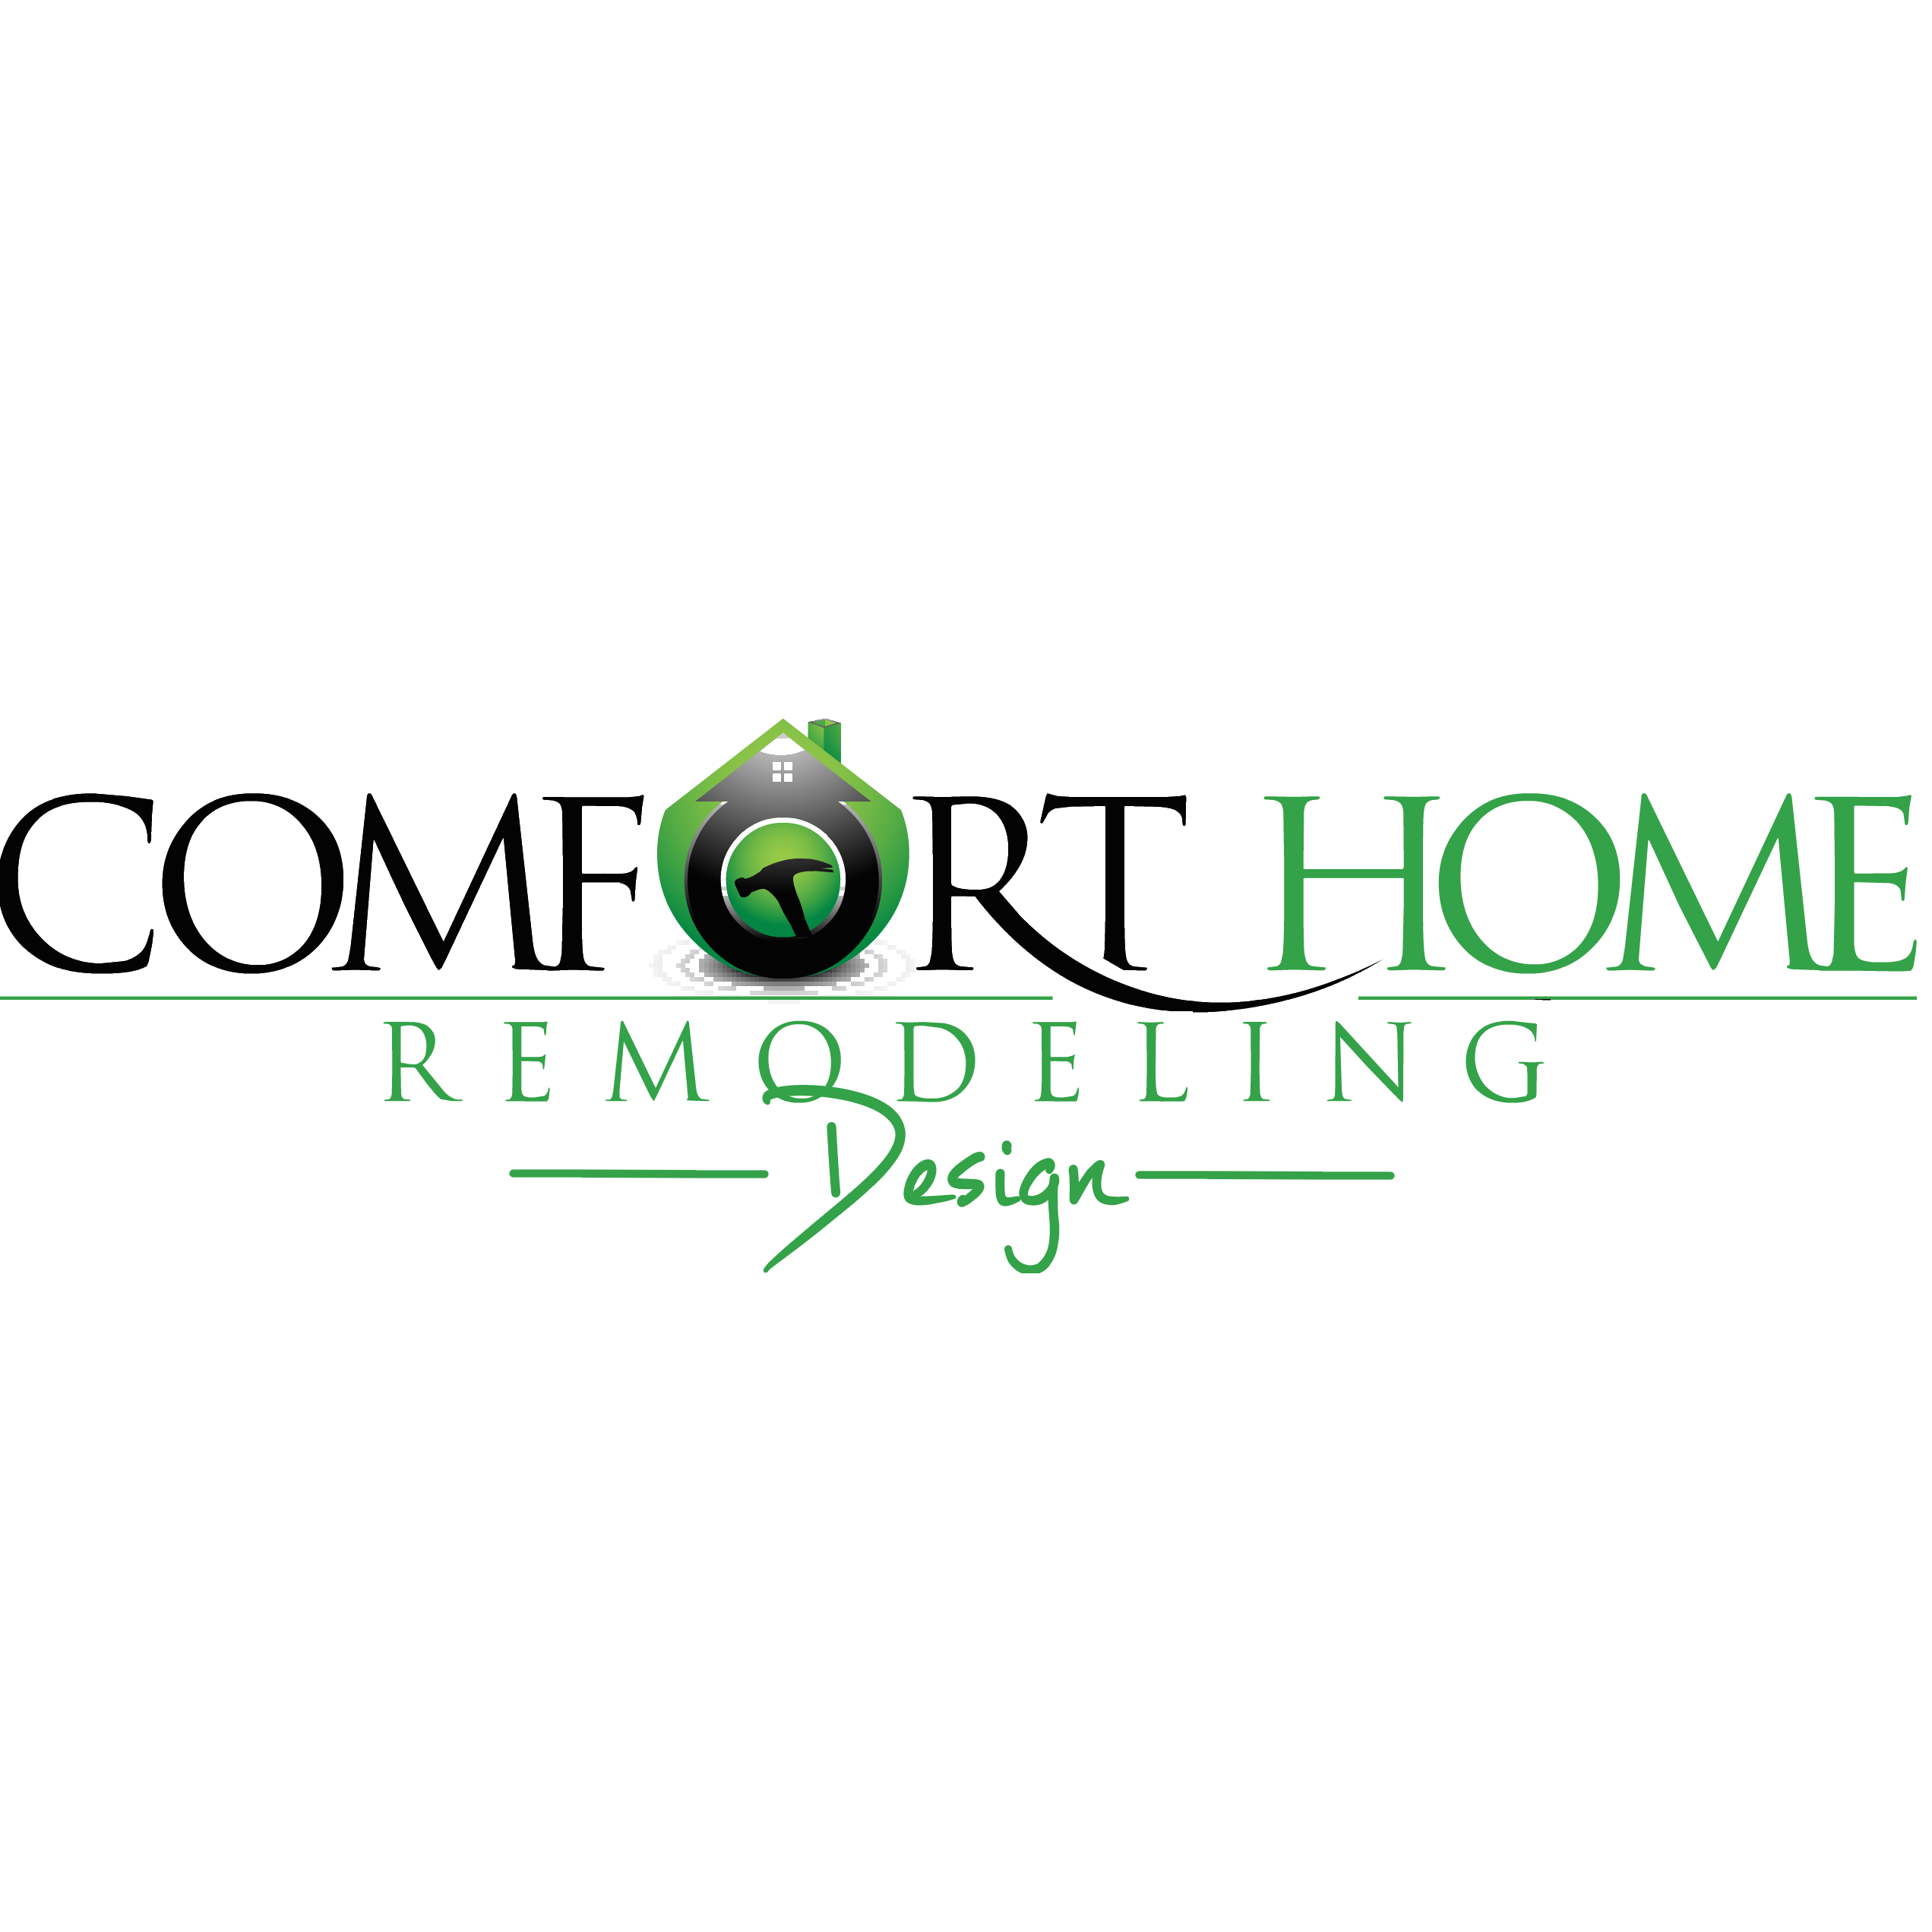 Comfort Home Remodeling Design In Elk Grove Village Il 60007